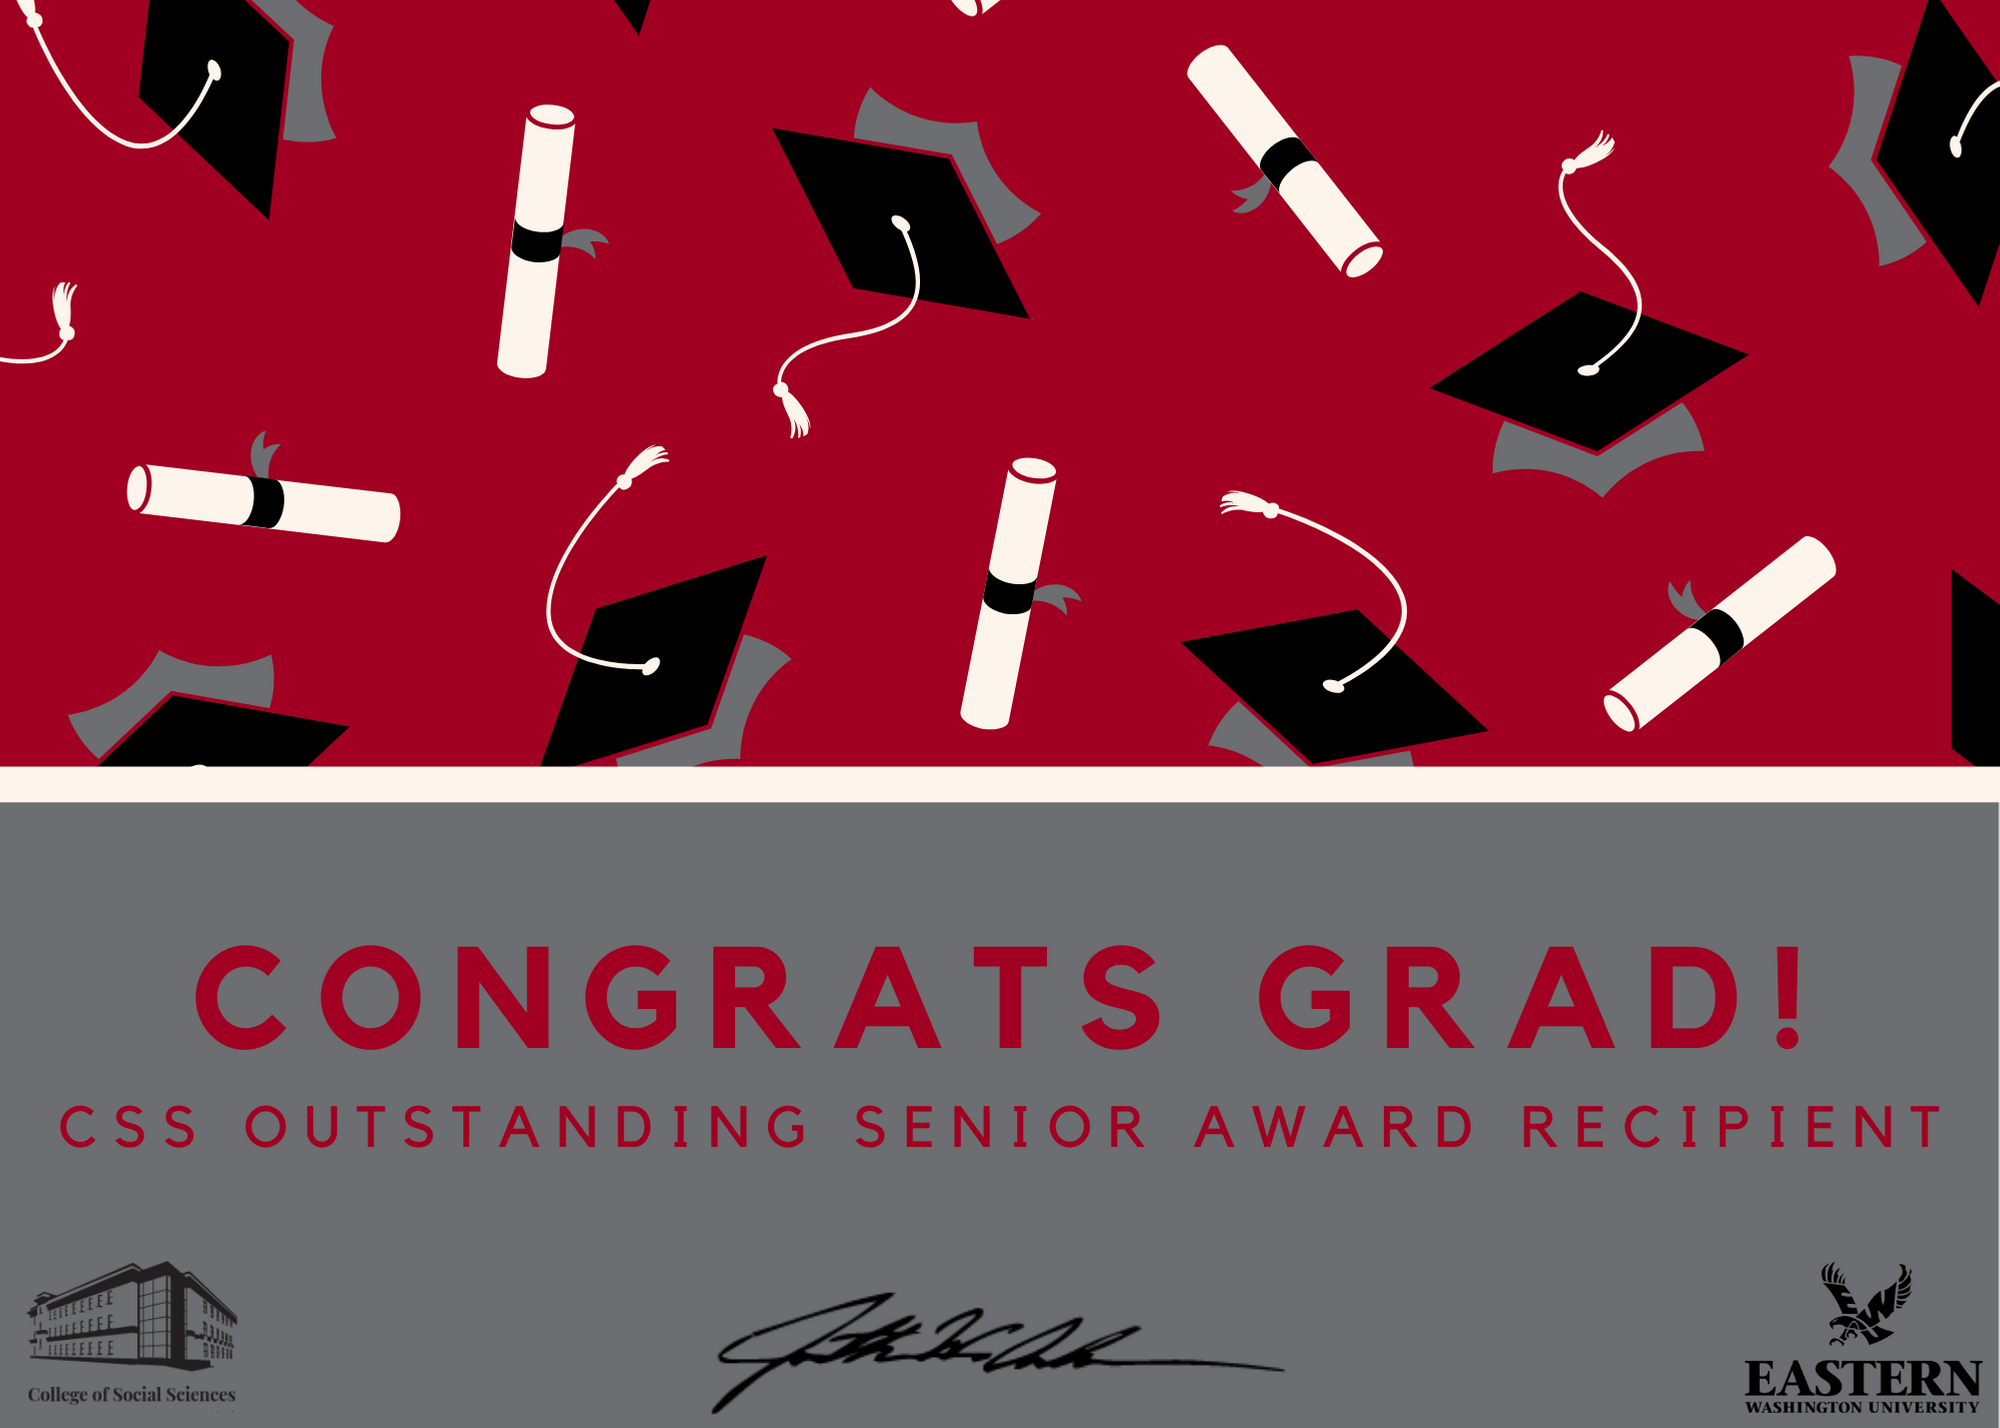 2049-caps-and-diplomas-pattern-graduation-card-2.png